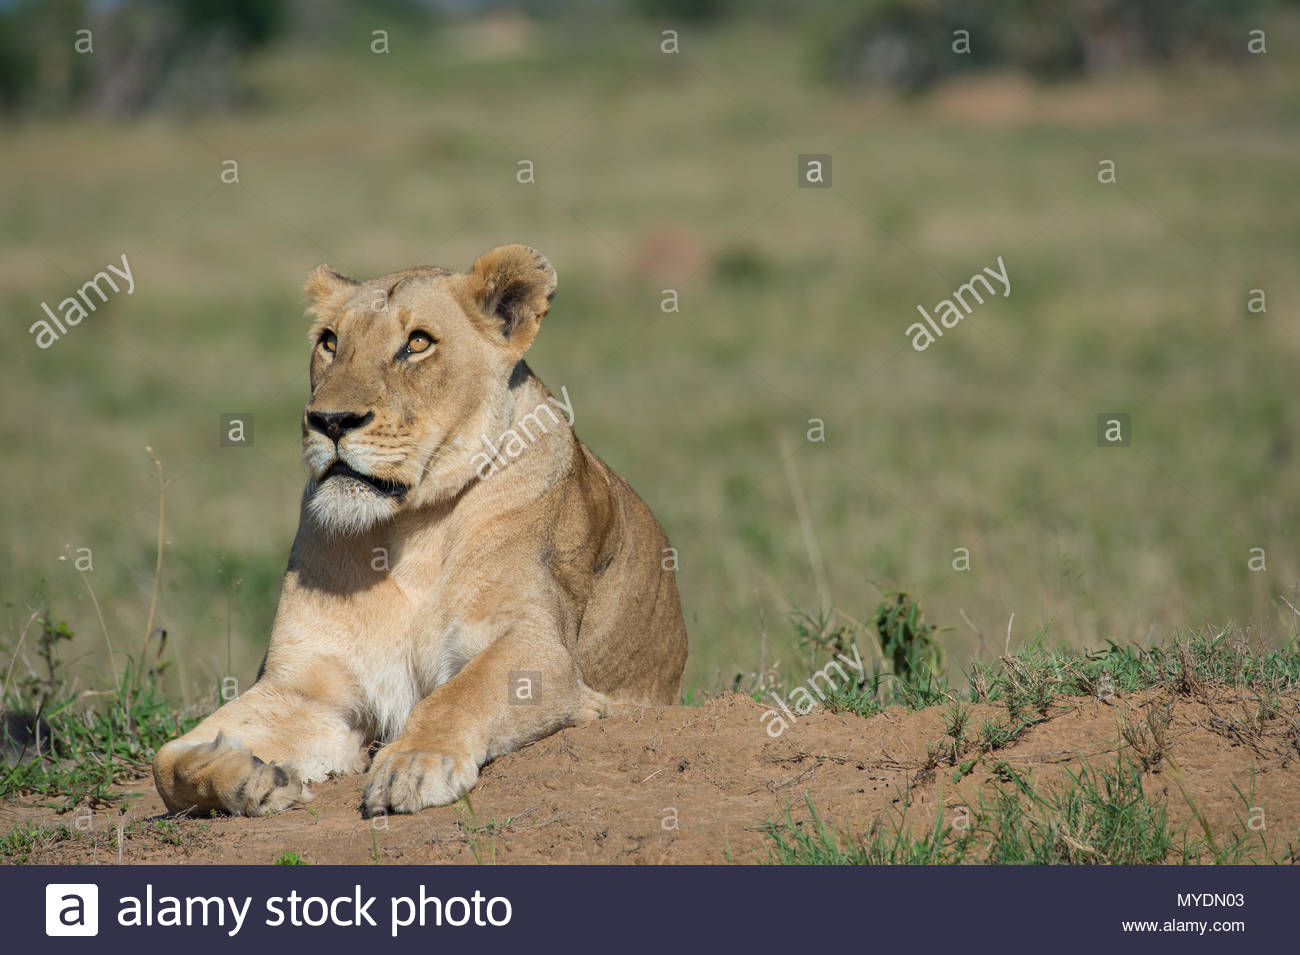 A female lion looks up. - Stock Image